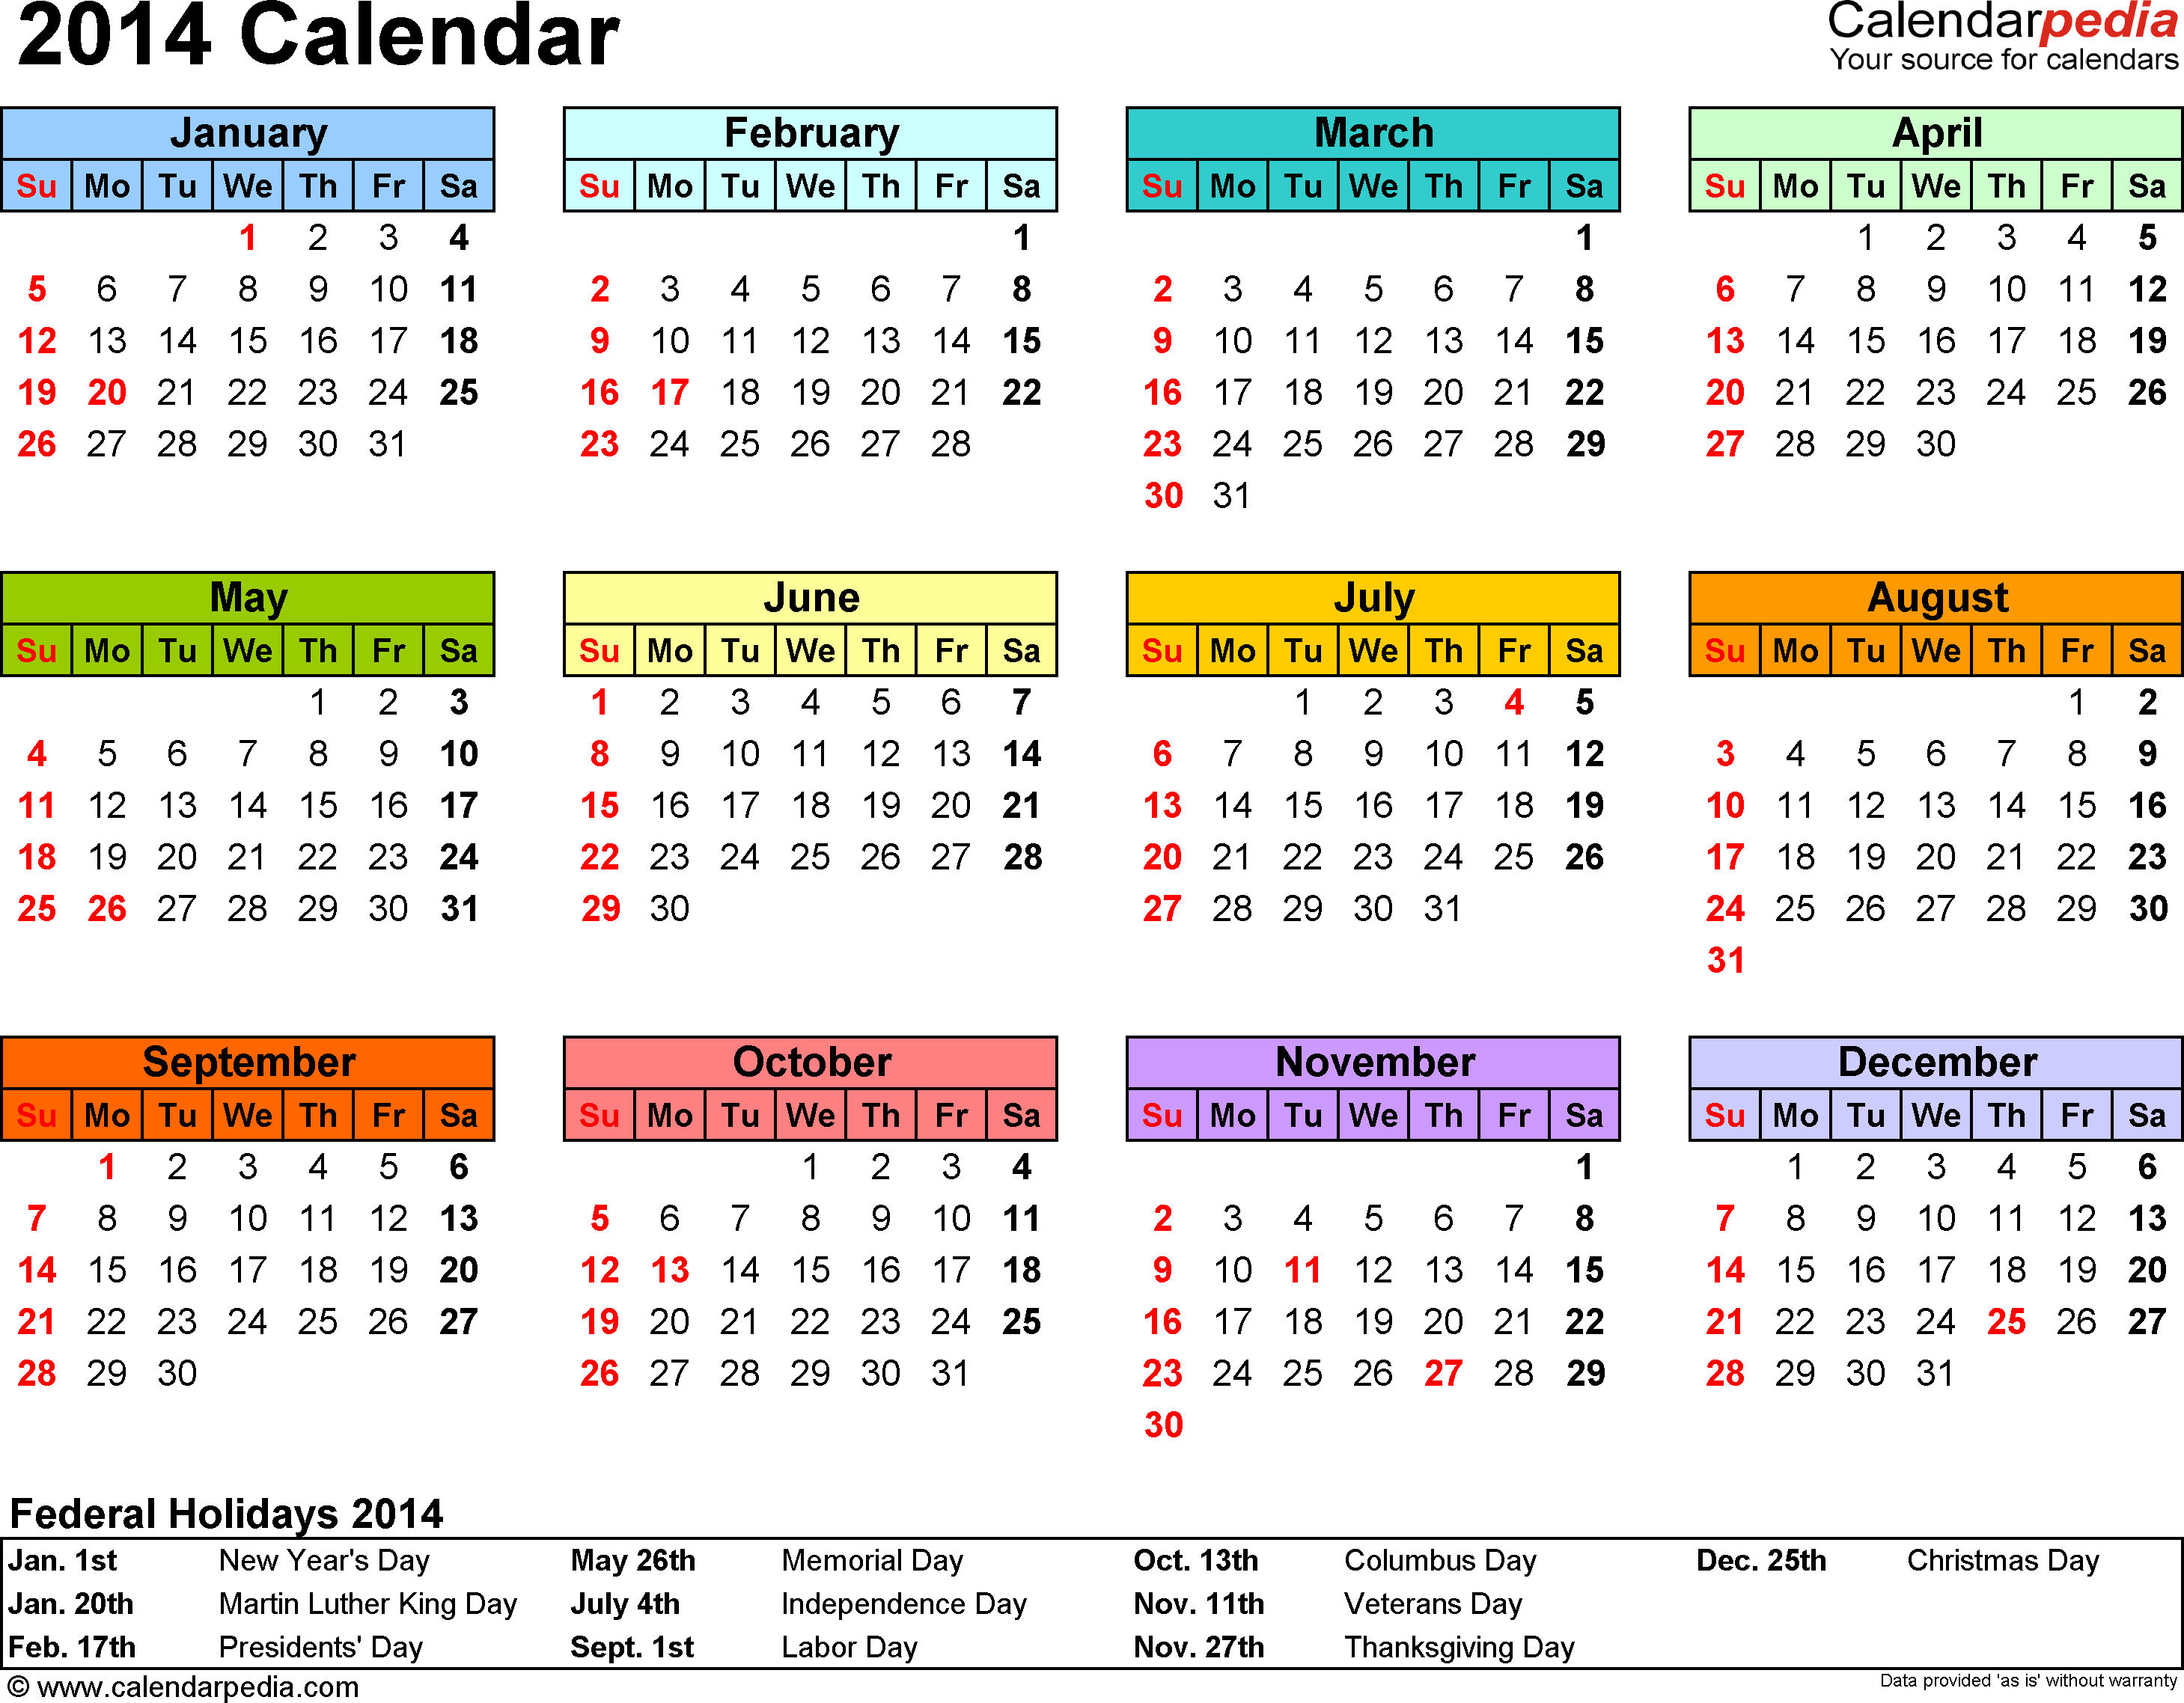 2014 calendar pdf 13 free printable calendar templates for Fillable calendar template 2014